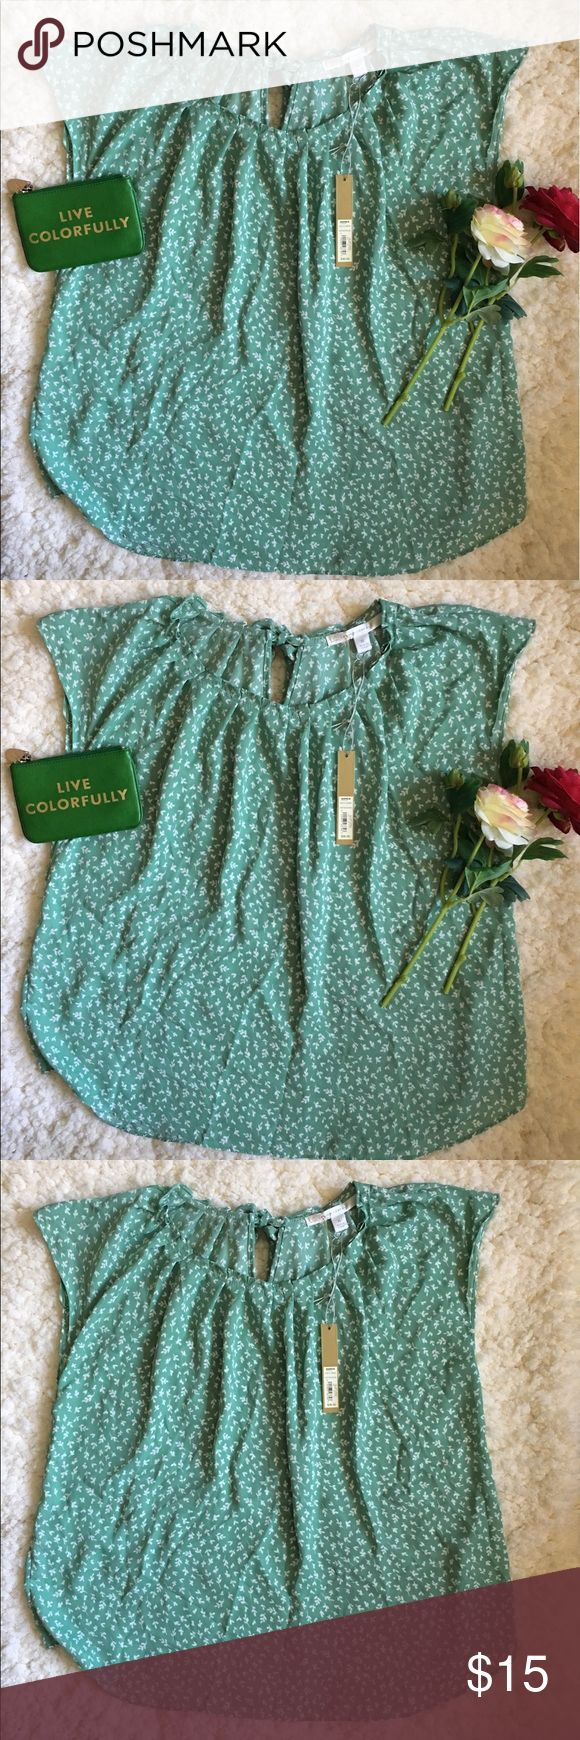 🌾🌼LC Lauren Conrad Blouse🌾🌼 🌾🌼Brand new with tag attached LC Lauren Conrad Blouse in size XL🌾🌼Please see all photos🌾🌼 LC Lauren Conrad Tops Blouses